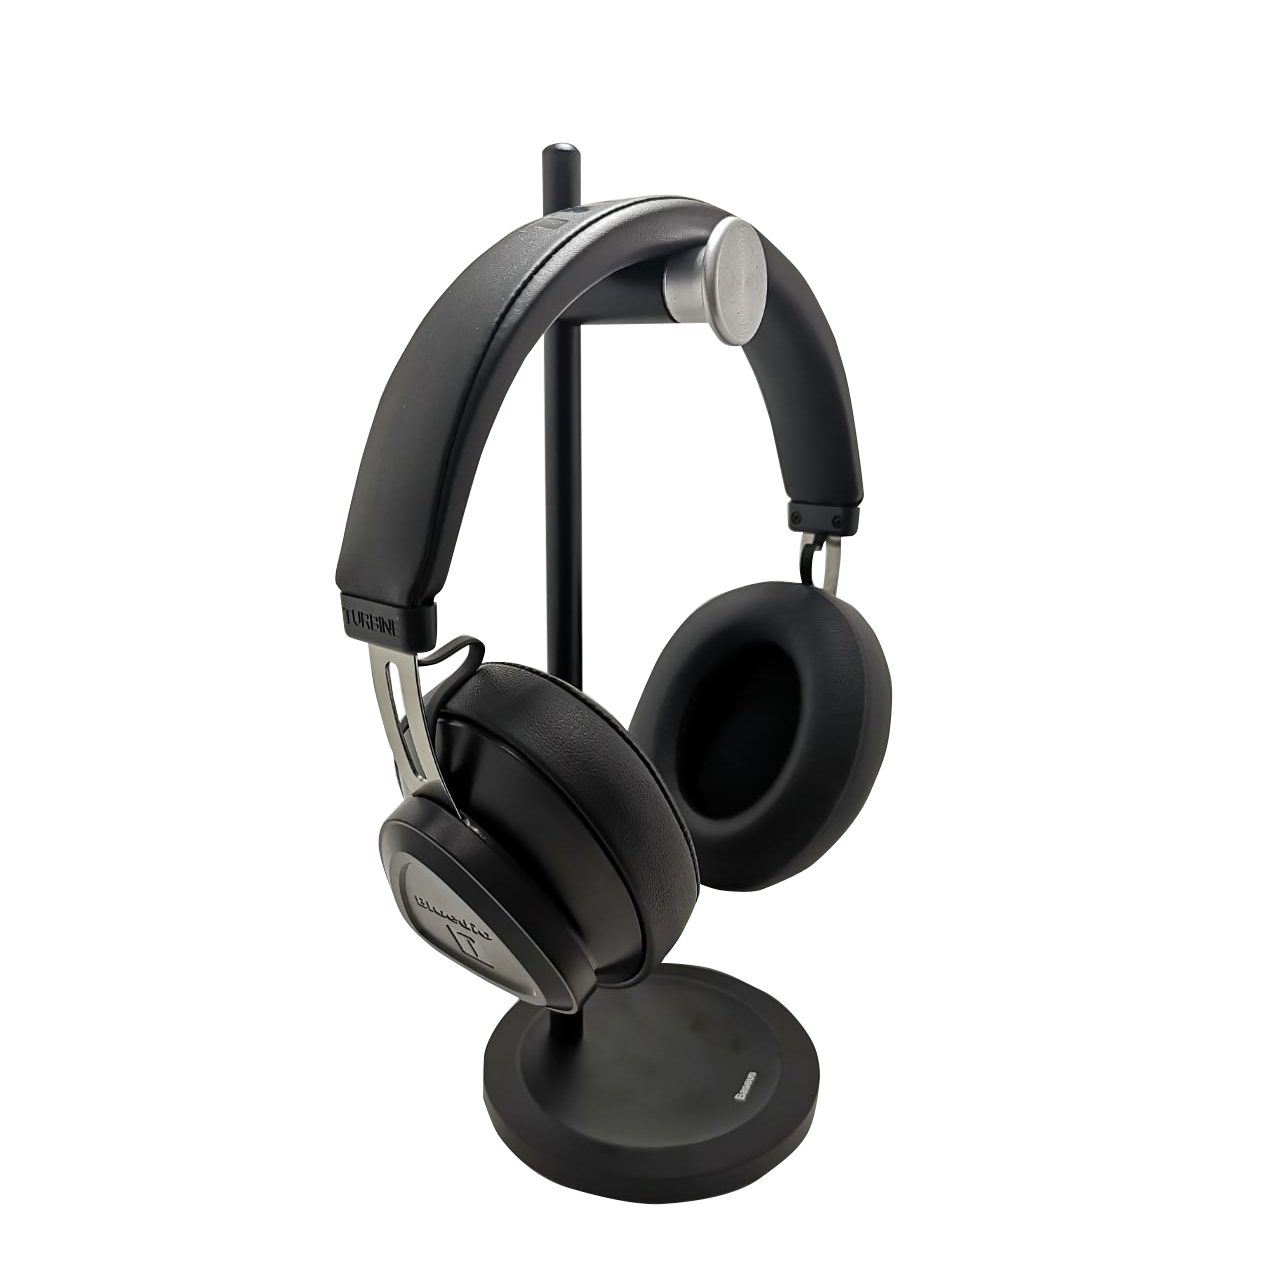 8bee0c2f87d Bluedio T Monitor Headphone For Sale In Jamaica - Cell Jamaica ...